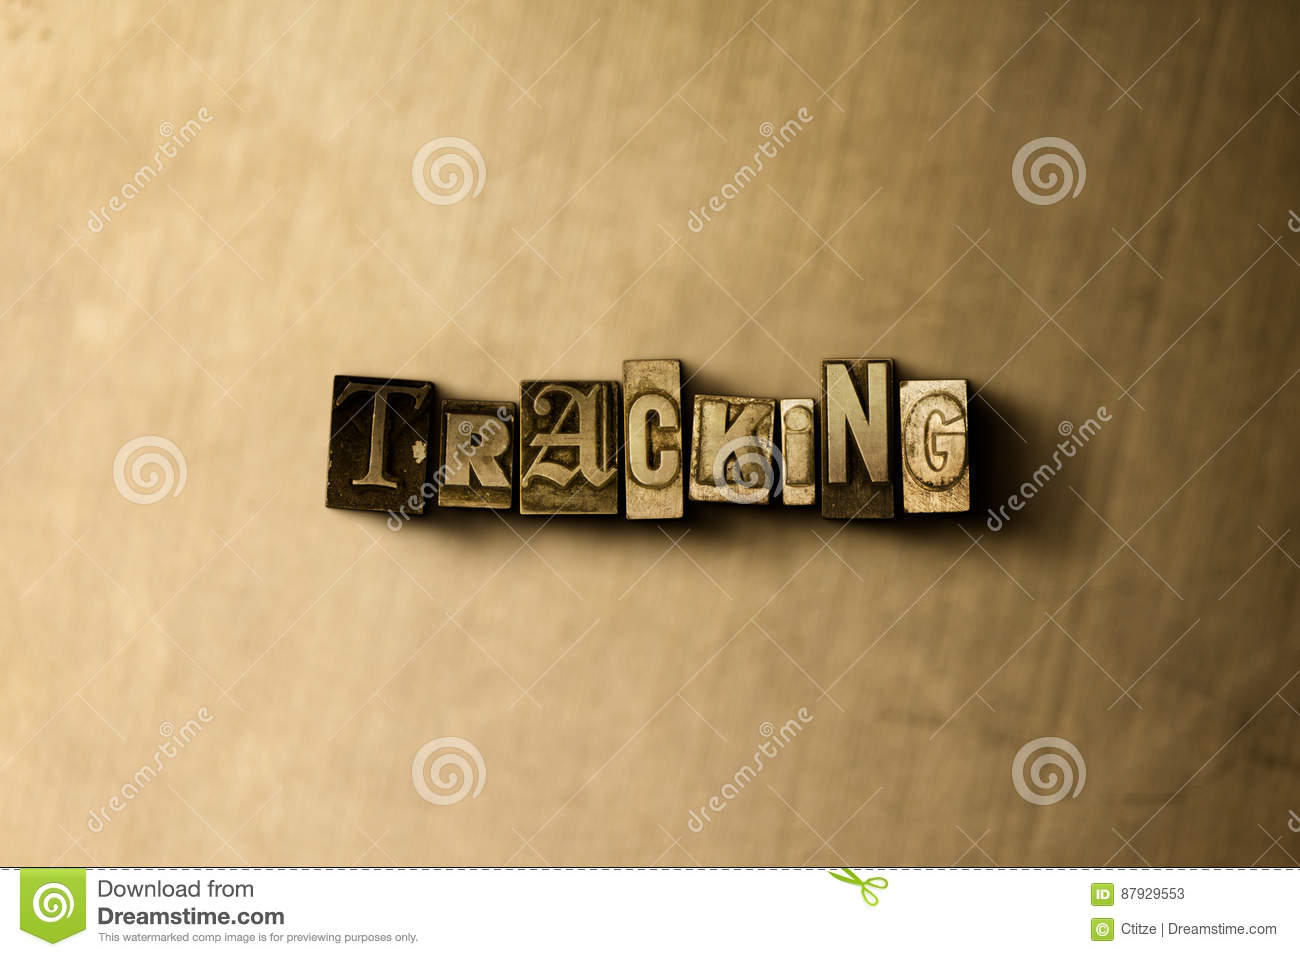 tracking close up of grungy vintage typeset word on metal backdrop